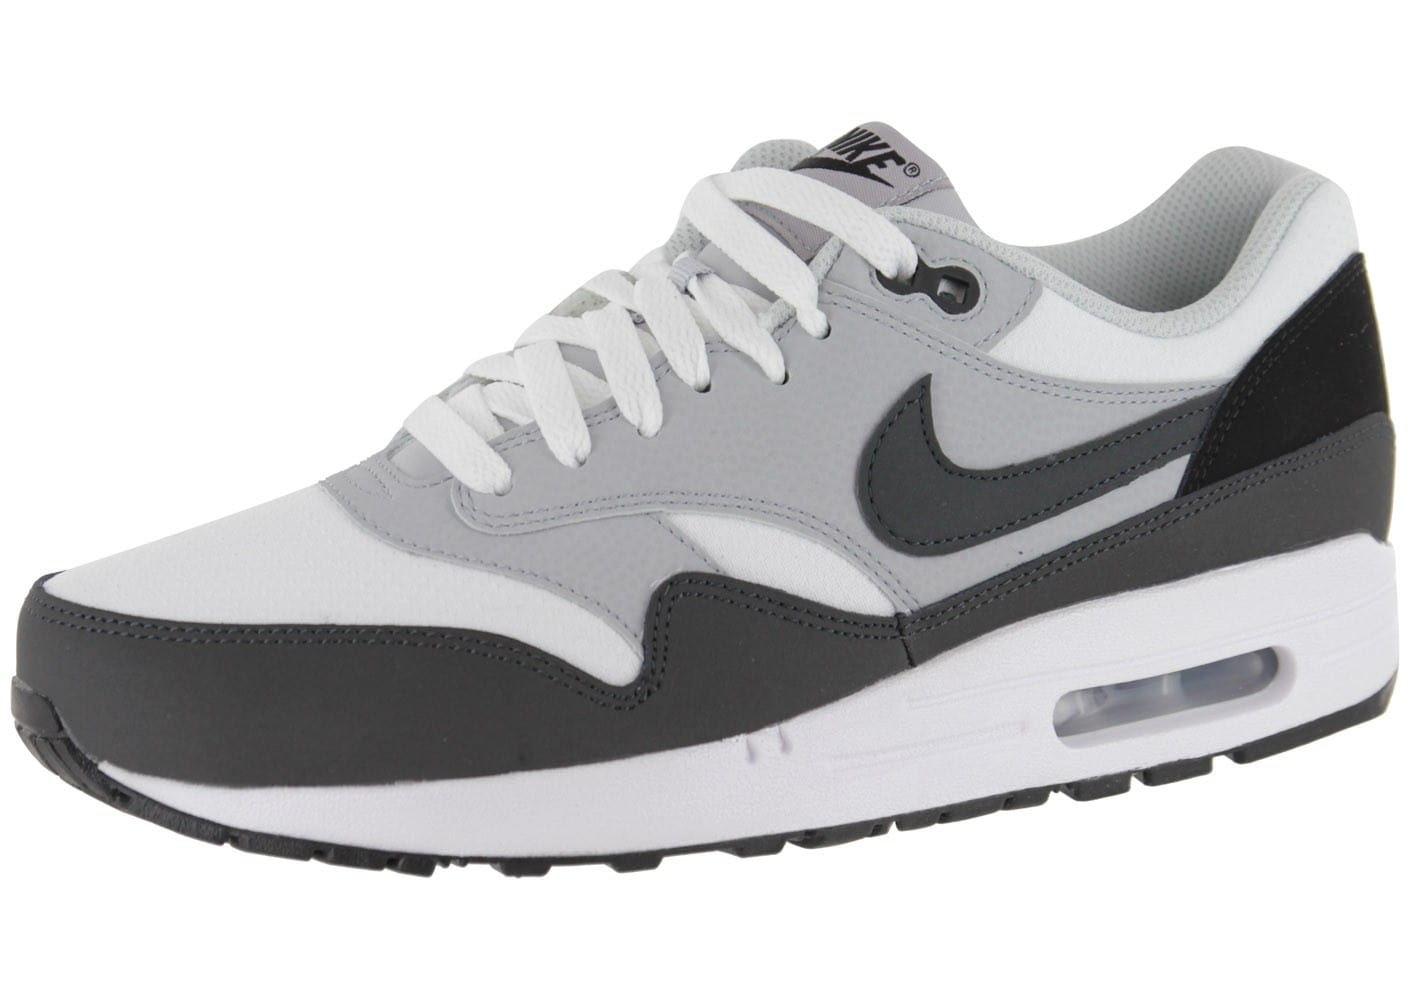 air max one essential homme nike dunk low pro sb pushead. Black Bedroom Furniture Sets. Home Design Ideas